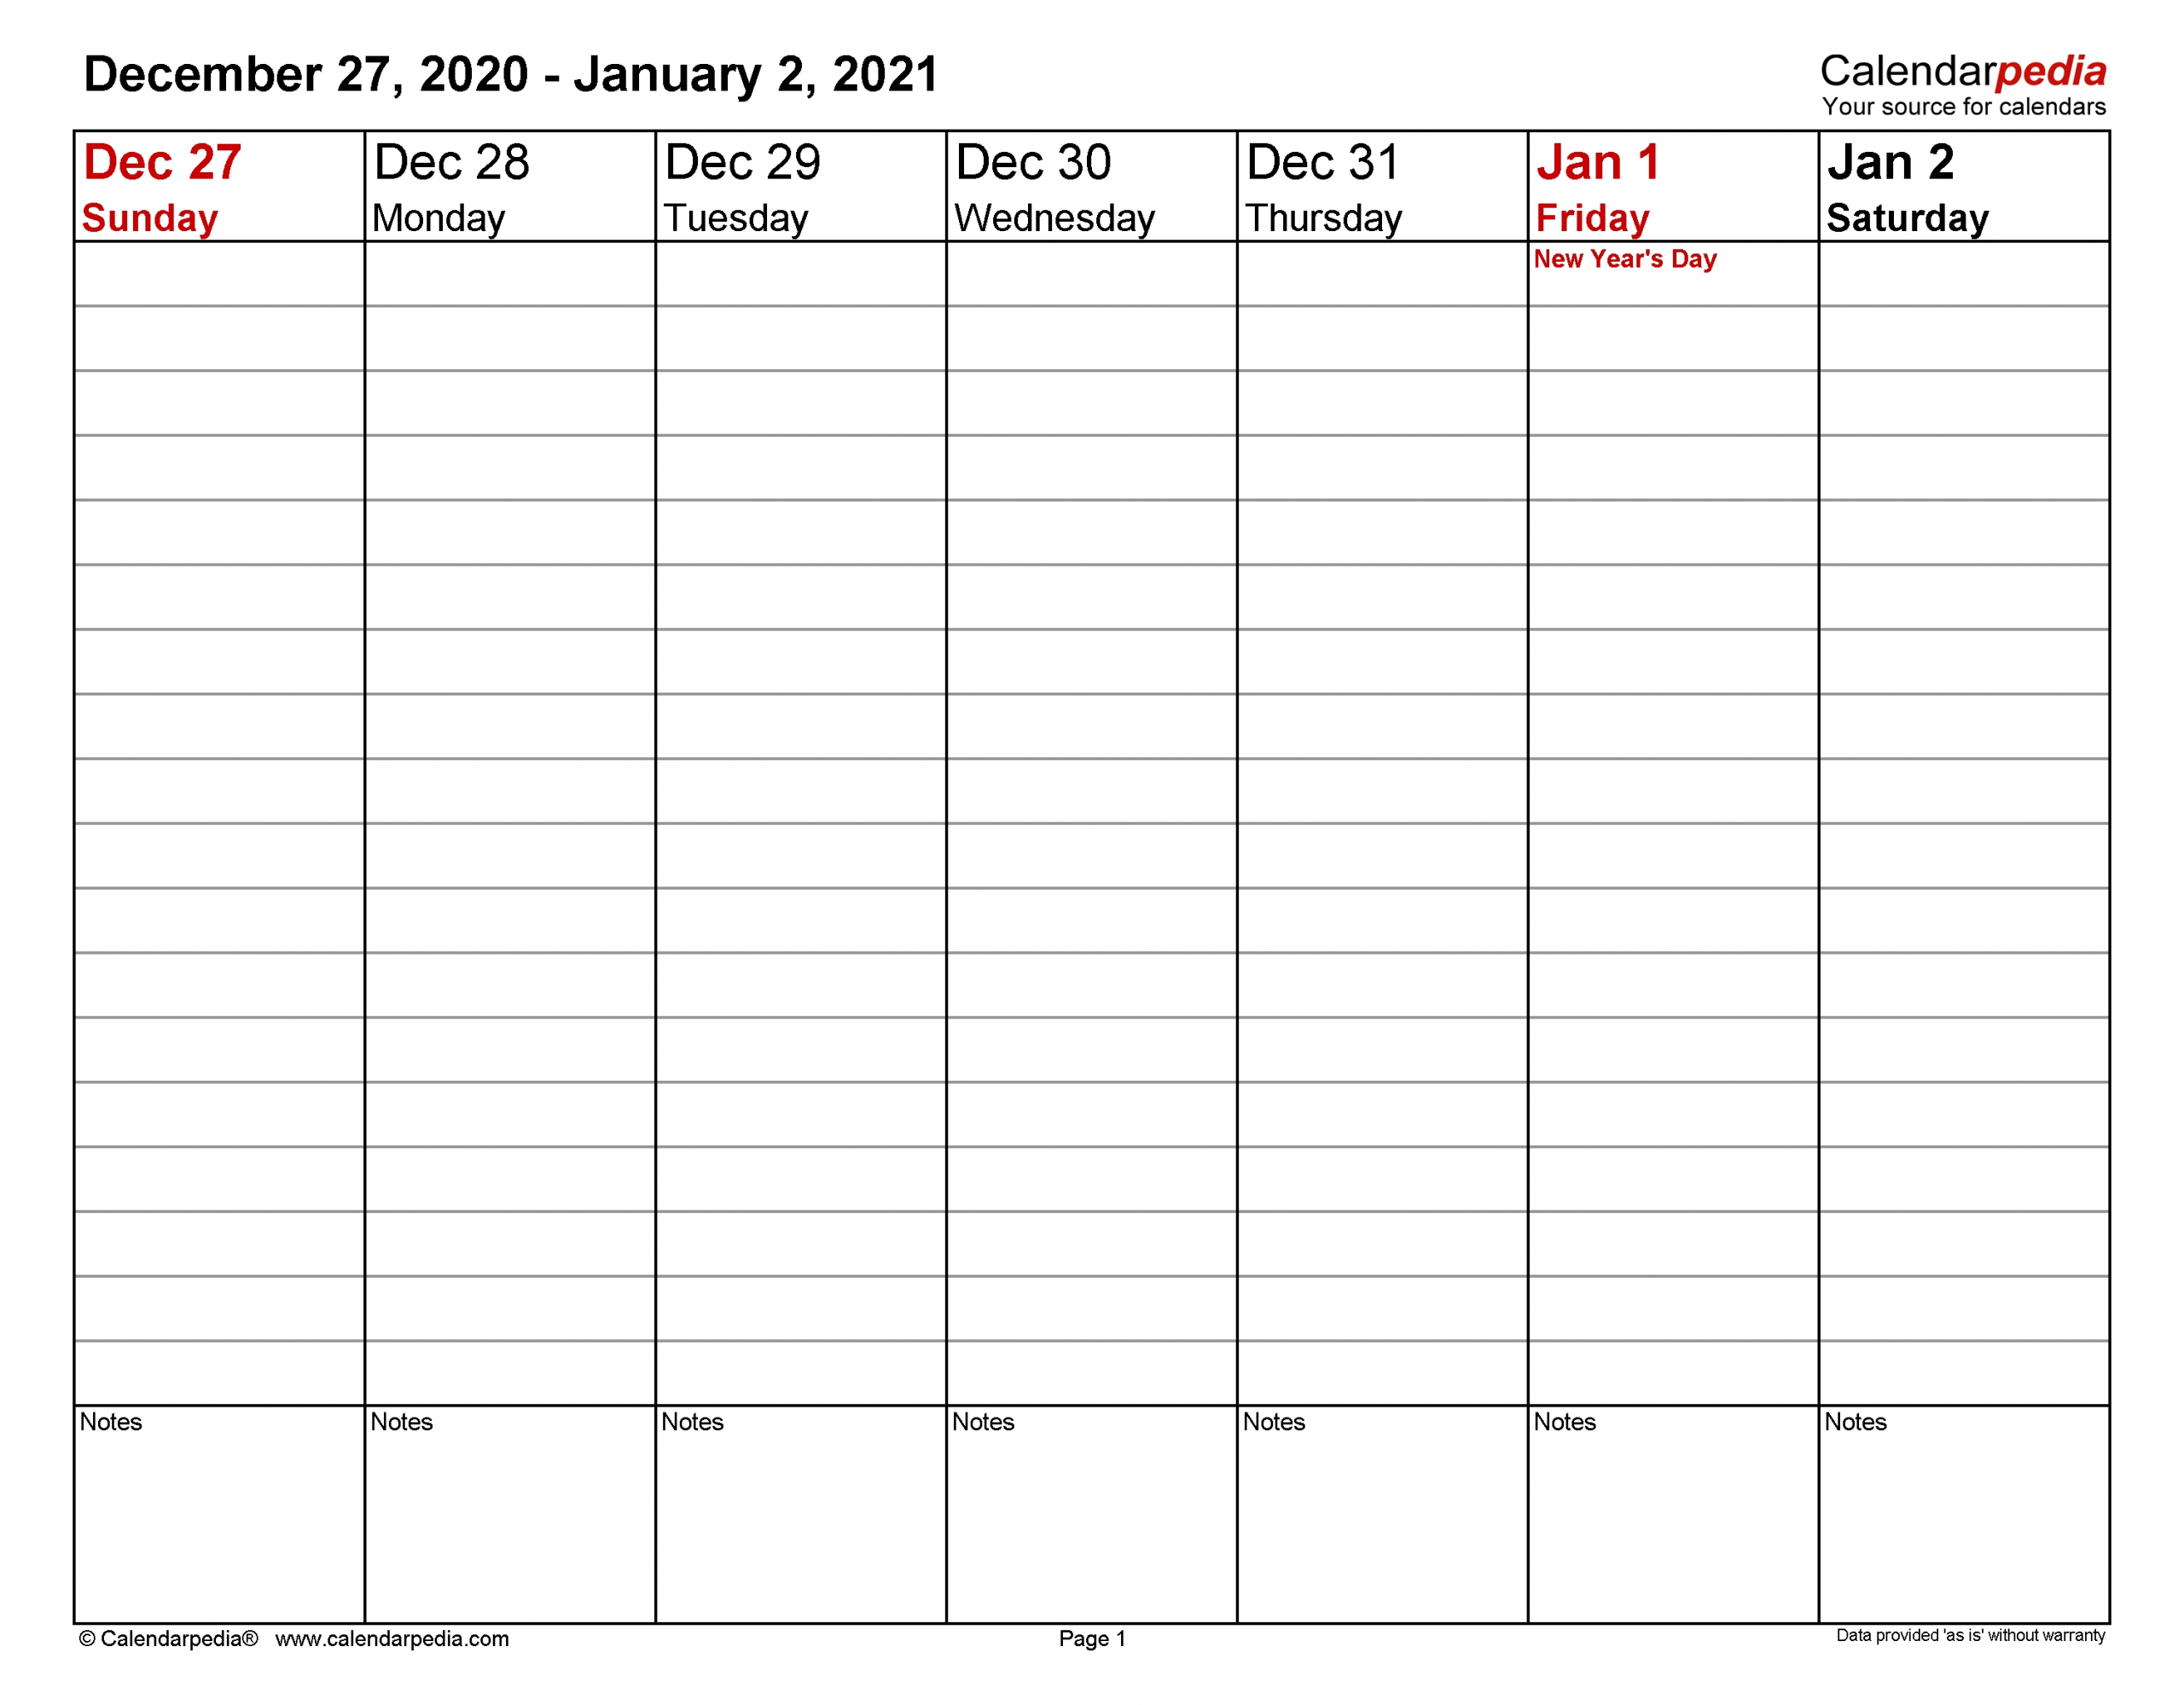 Weekly Calendars 2021 For Word - 12 Free Printable Templates